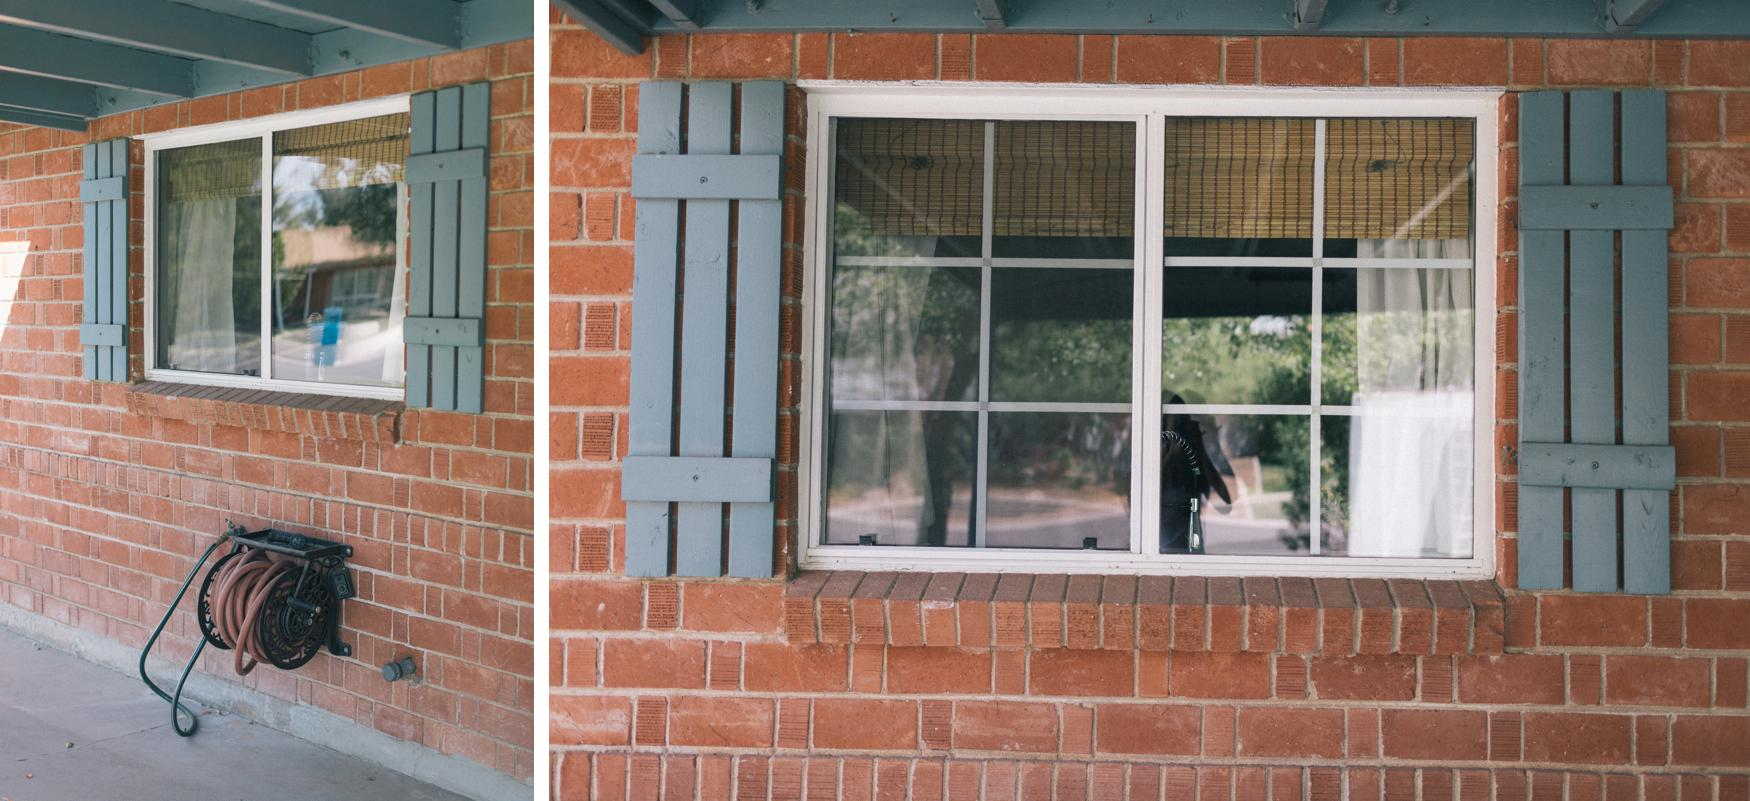 a review on adding window panes to already existing windows so easy with new panes a review on